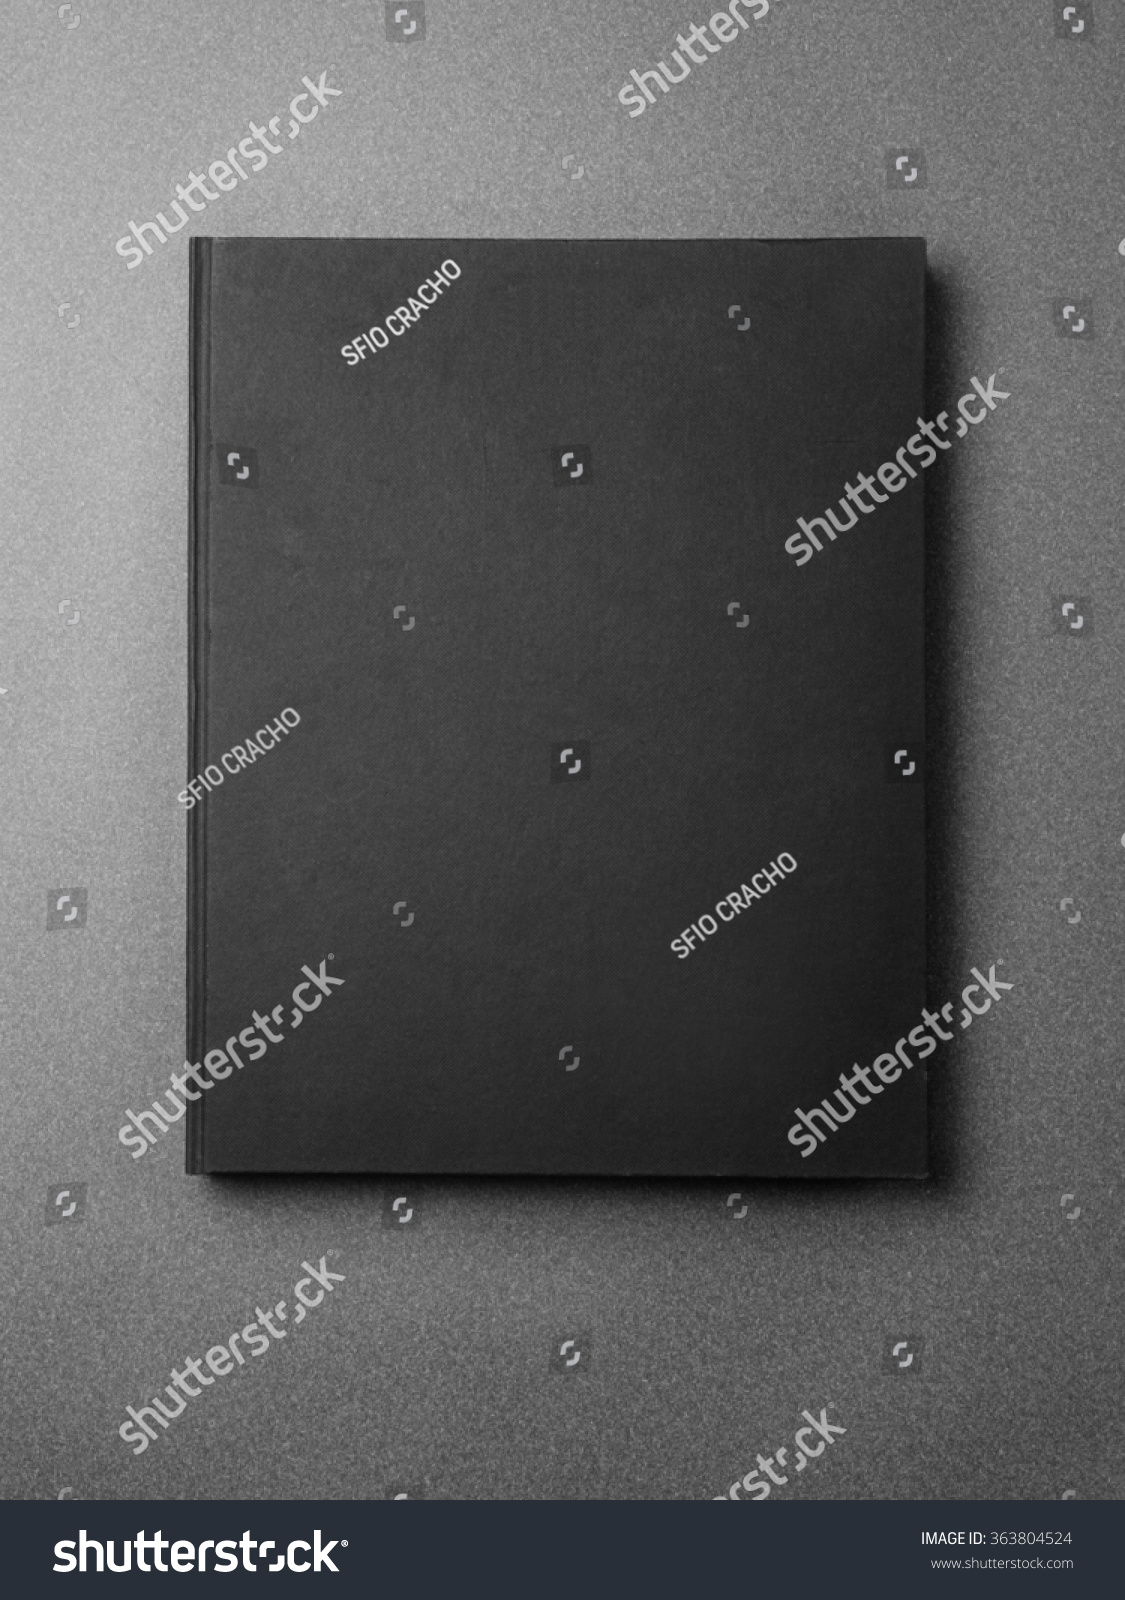 Black Book Cover Backgrounds : Black book cover on the gray background stock photo